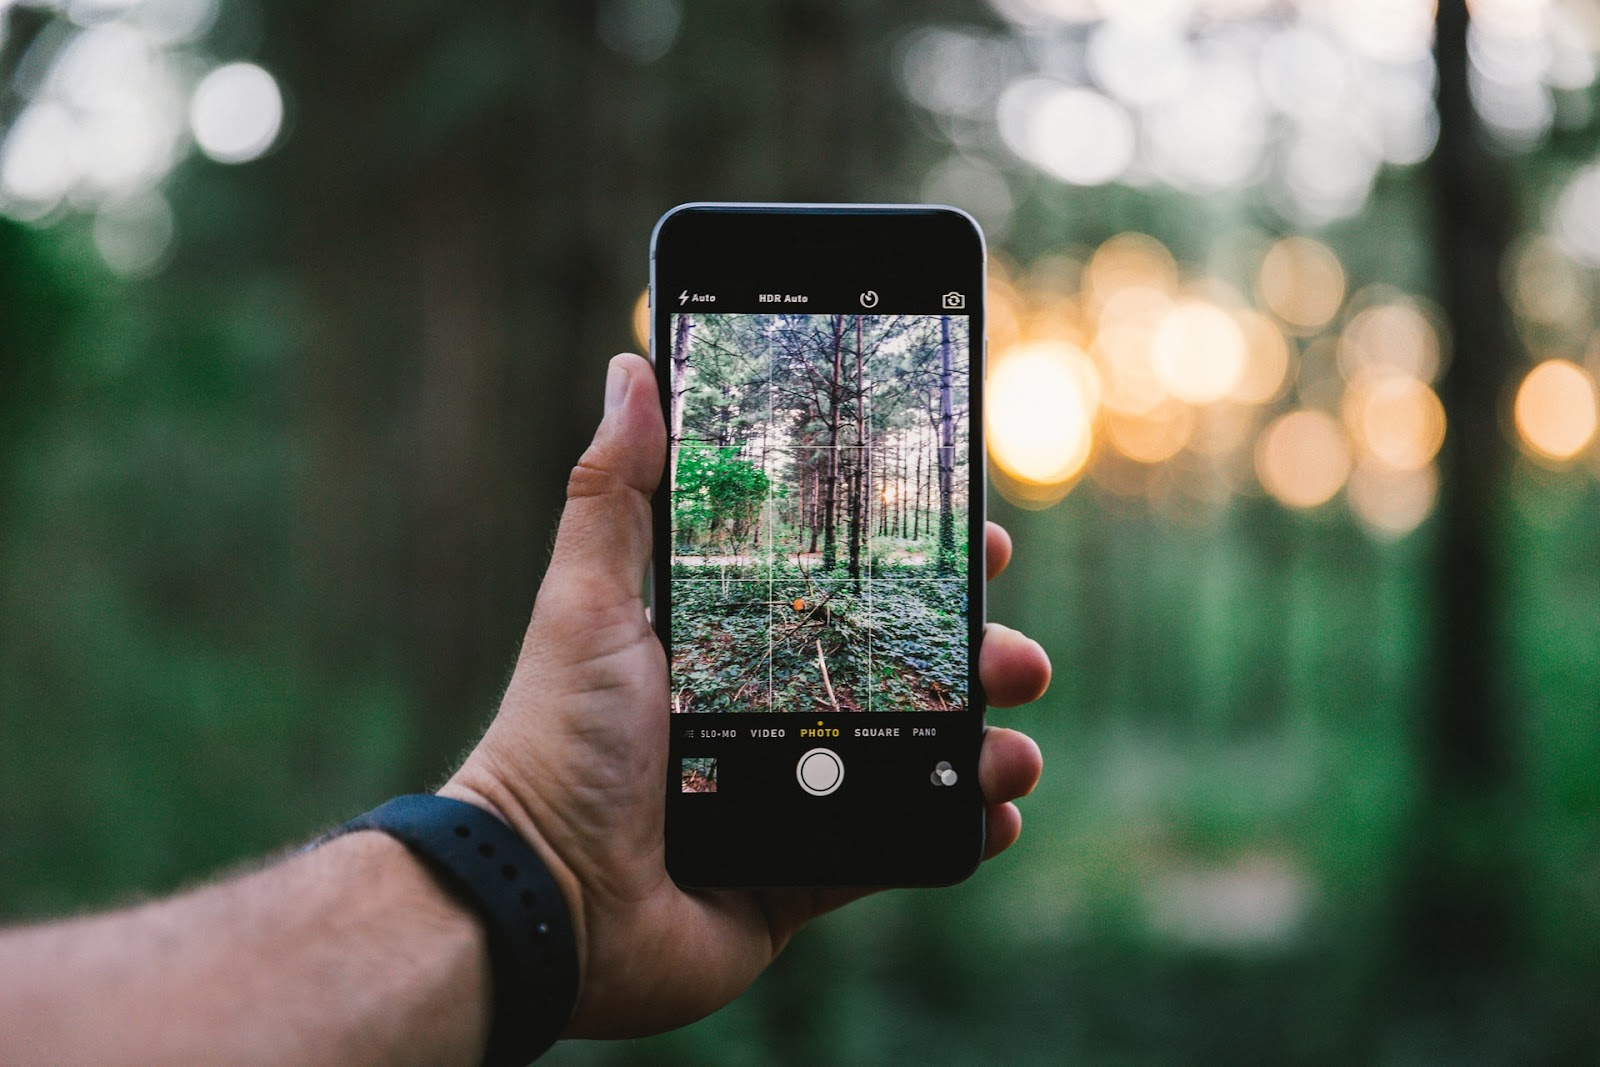 A hand holds an iPhone that is preparing to take a picture of a sunset in the woods.